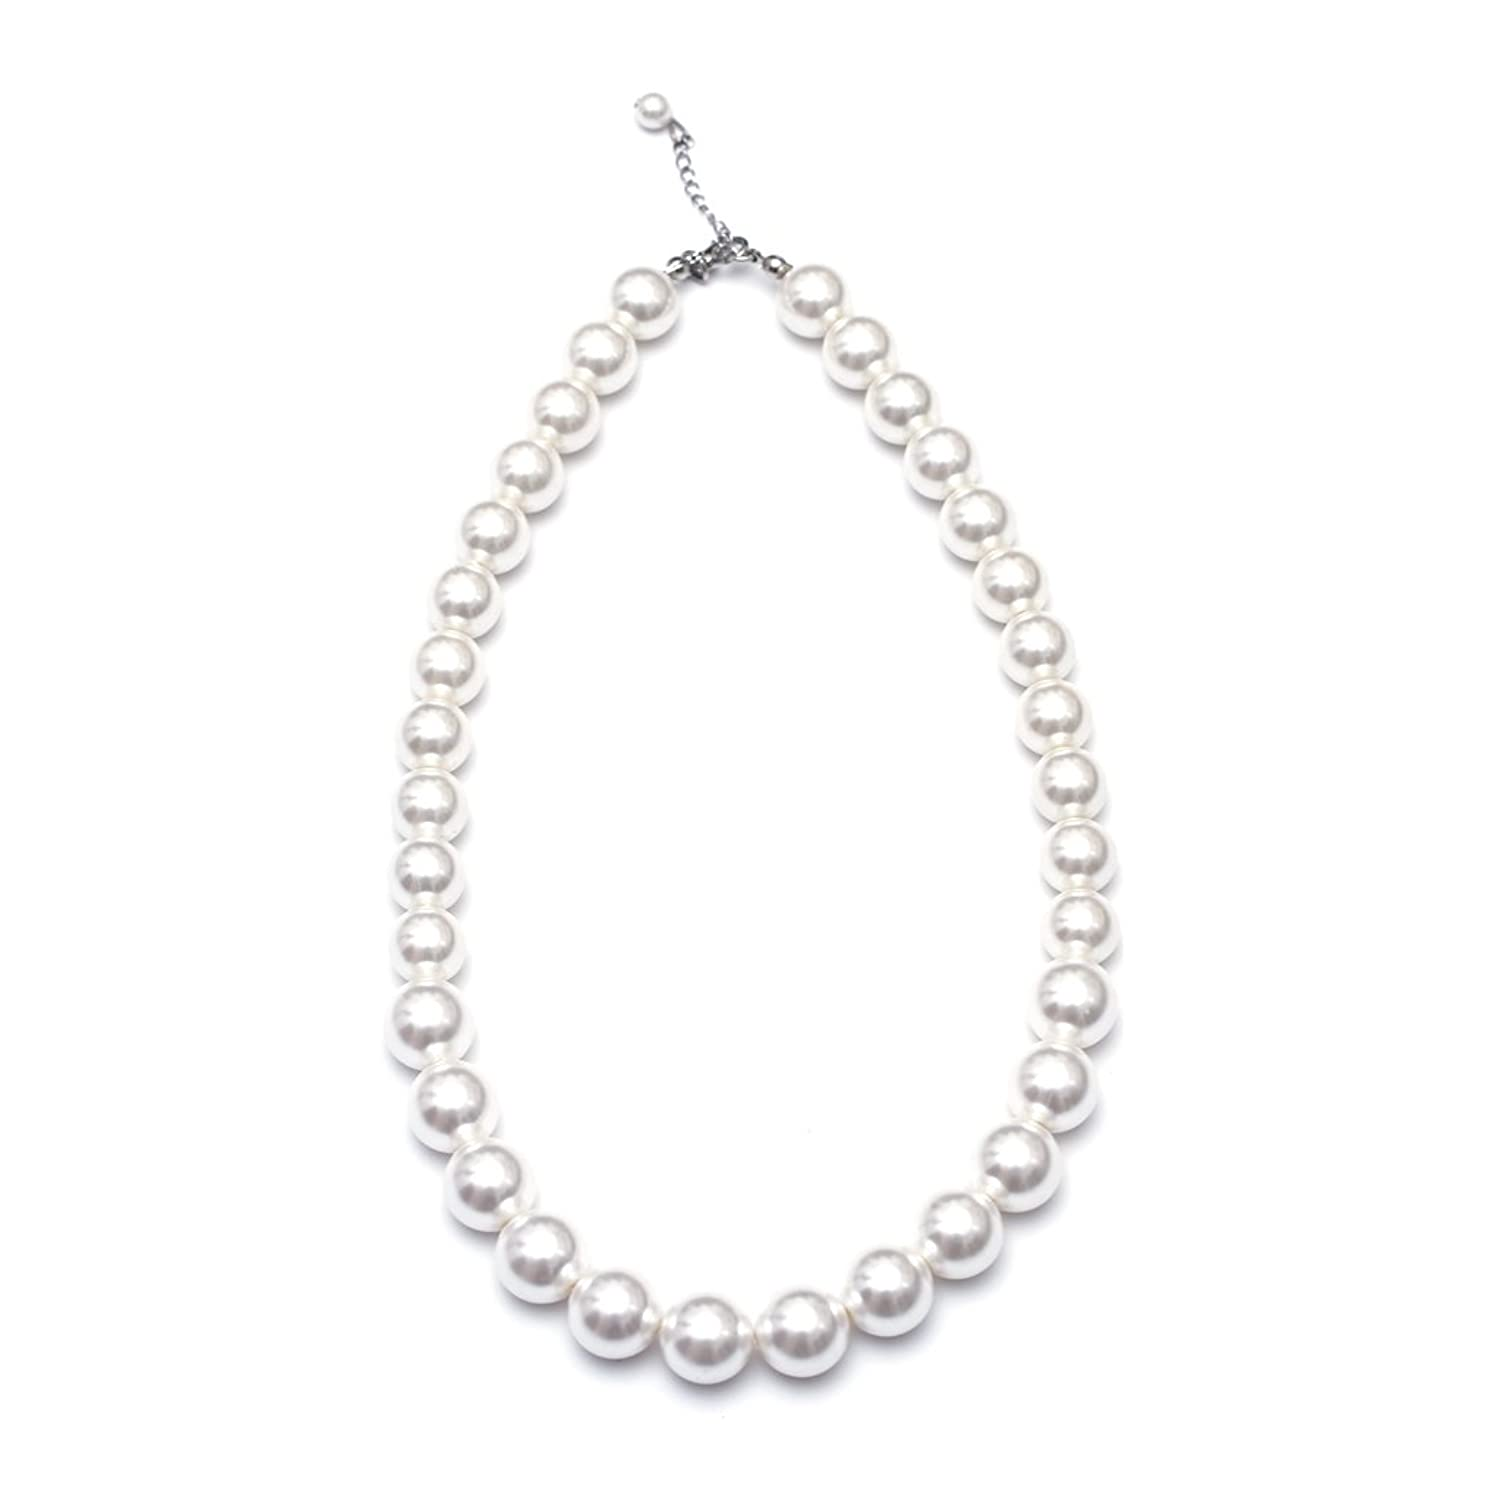 6db1c377f These premium, radiant white pearl necklaces for girls and teens are  stylish, trendy and fun. Playing dress up or roleplaying with friends as  has never been ...